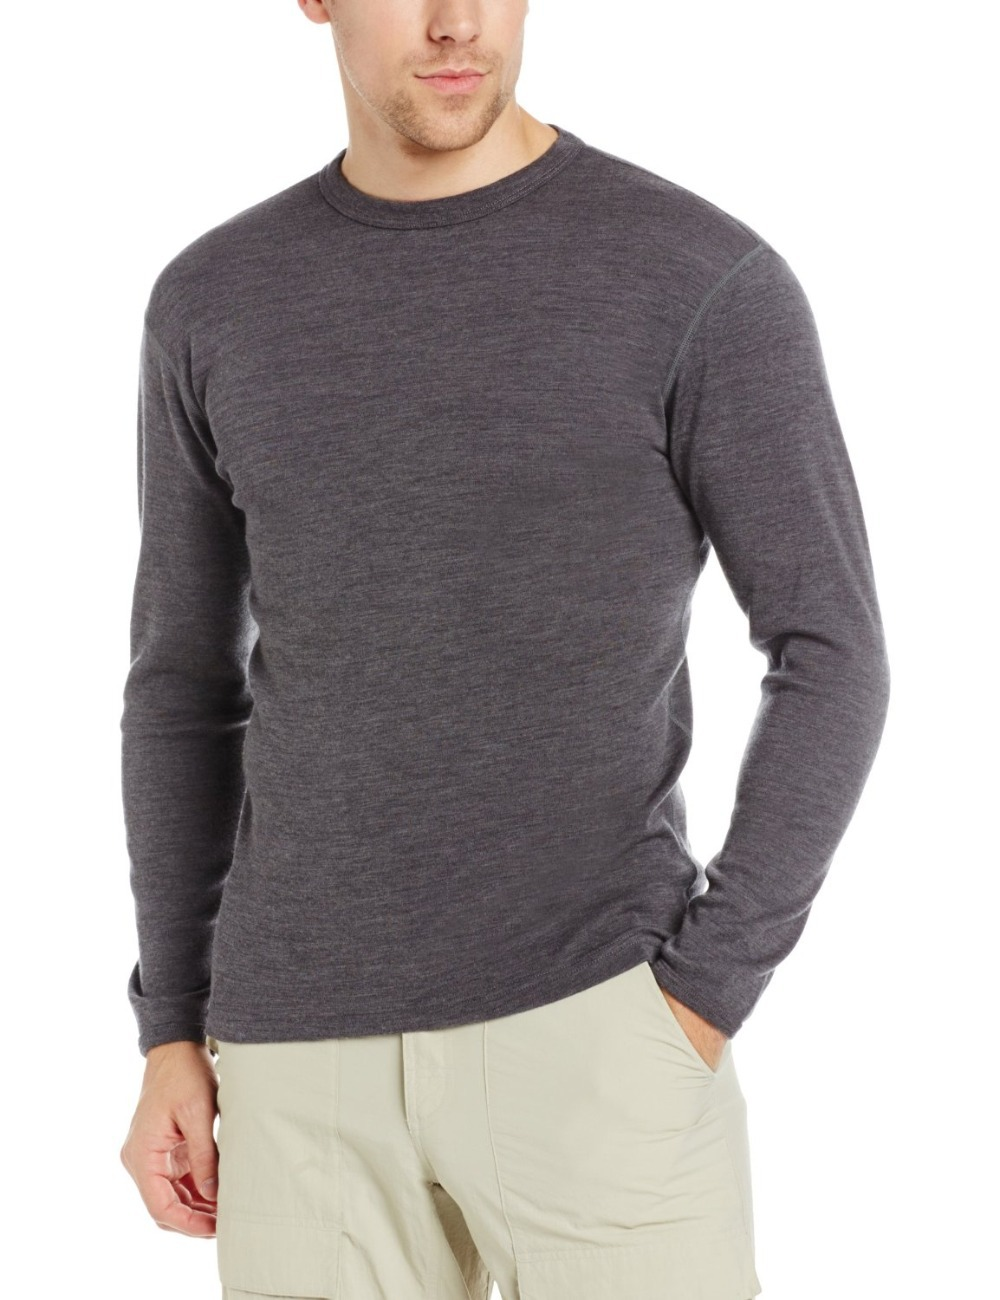 Looking for merino wool shirts? Pendleton's mens wool clothing is woven in USA and crafted to last. Shop mens wool clothes now. Merino Wool Blankets Cotton Blankets Bags & Accessories Featured Bags & Accessories Men's Clothing Wool Shirts Cotton Shirts Sweaters & .